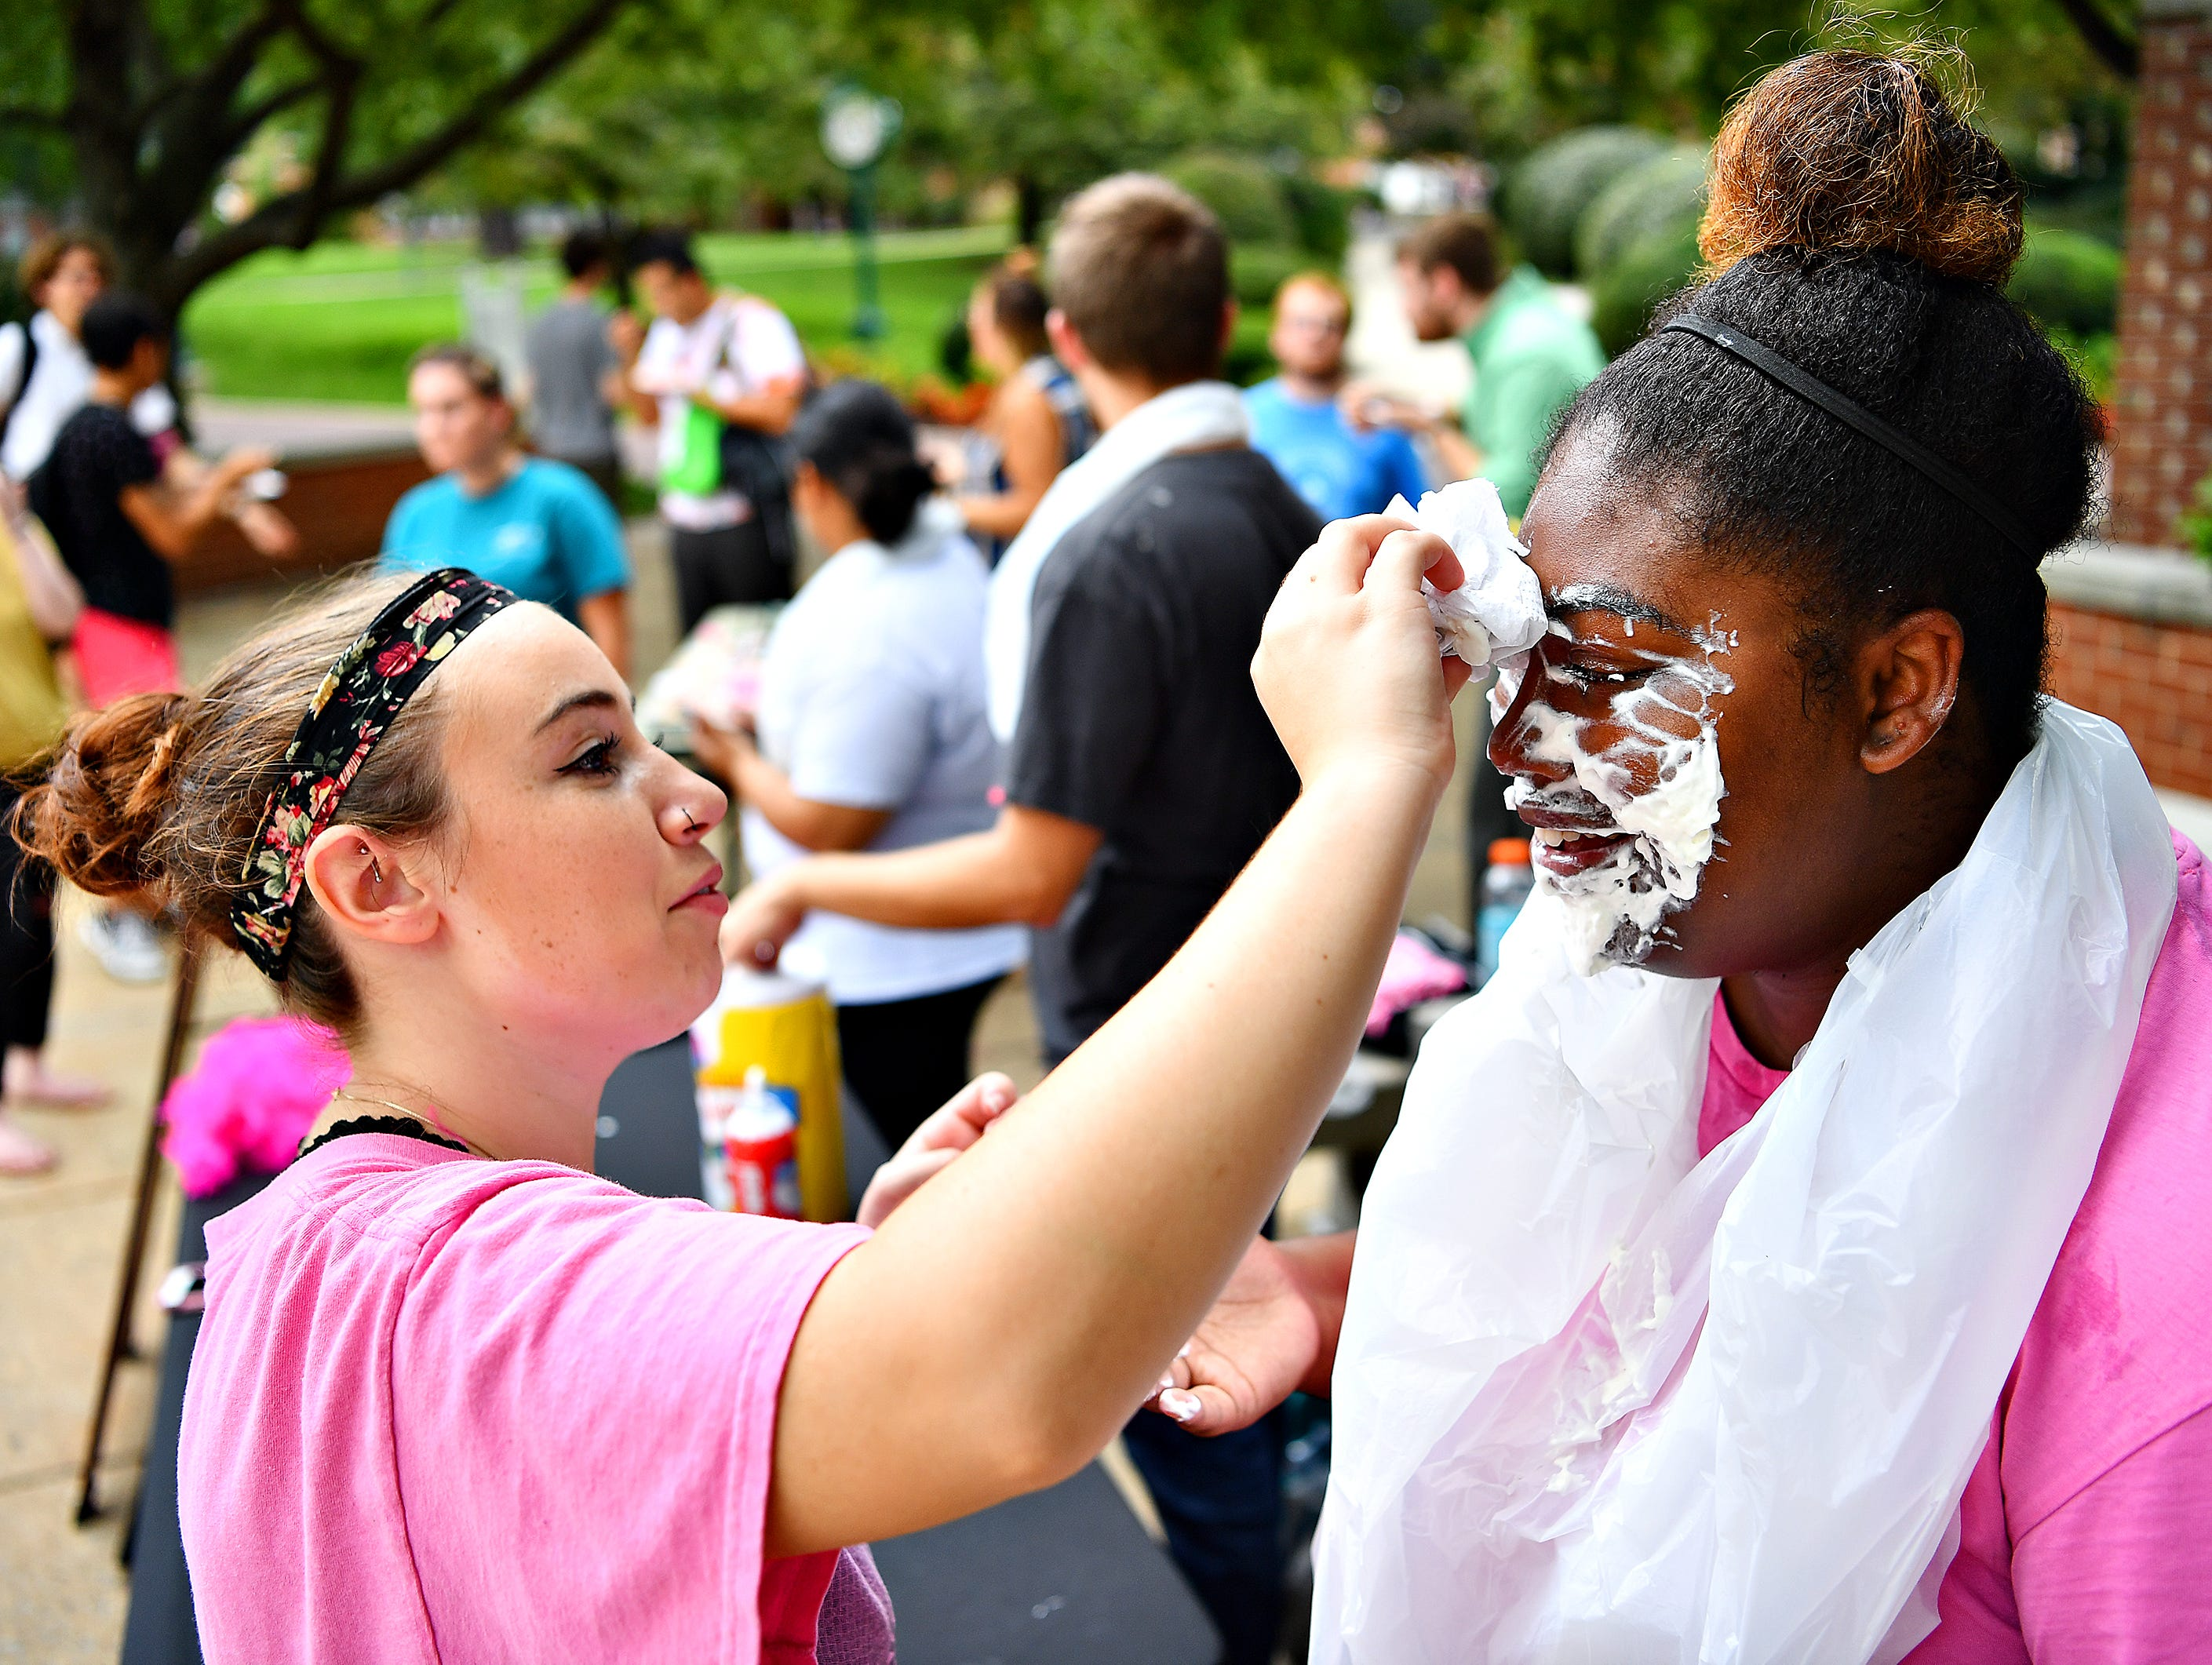 Lexi Biscotto, left, helps Student Senate Member Alexandria Willis after smashing a plate of whipped creme into her face while contributing to the Pie a Senator fundraising event as York College teams up with Feel Your Boobies Foundation to raise money in support of breast cancer research during Breast Cancer Awareness Month at York College of Pennsylvania in Spring Garden Township, Wednesday, Oct. 10, 2018. Dawn J. Sagert photo